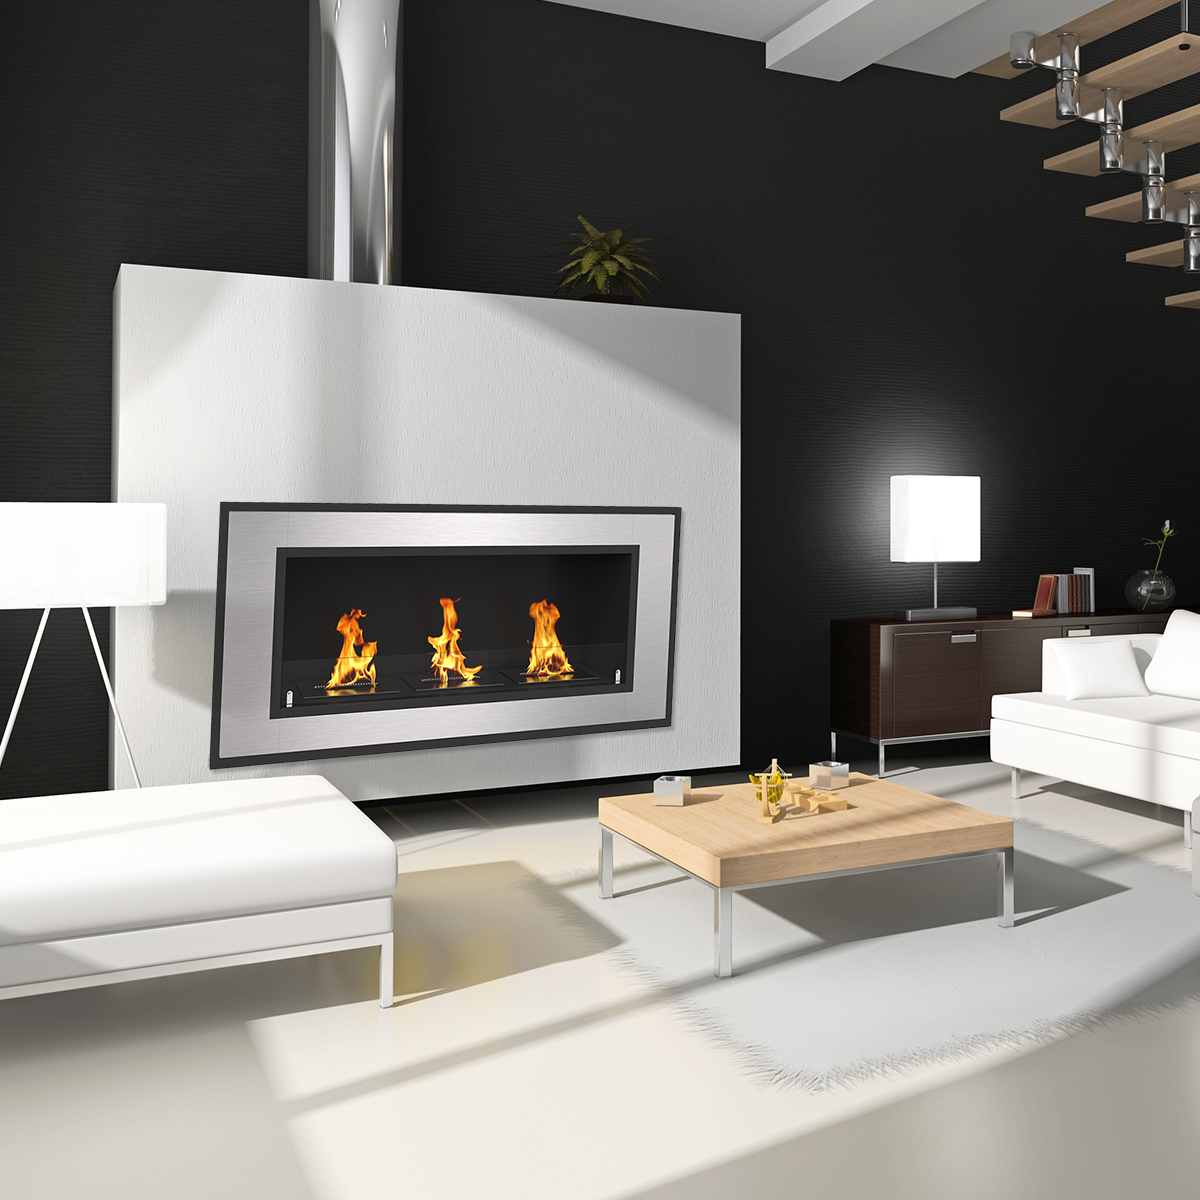 for wall pin home wish this fireplace popular you surely accent decor modern ll mounted room at living try to tv ideas most your